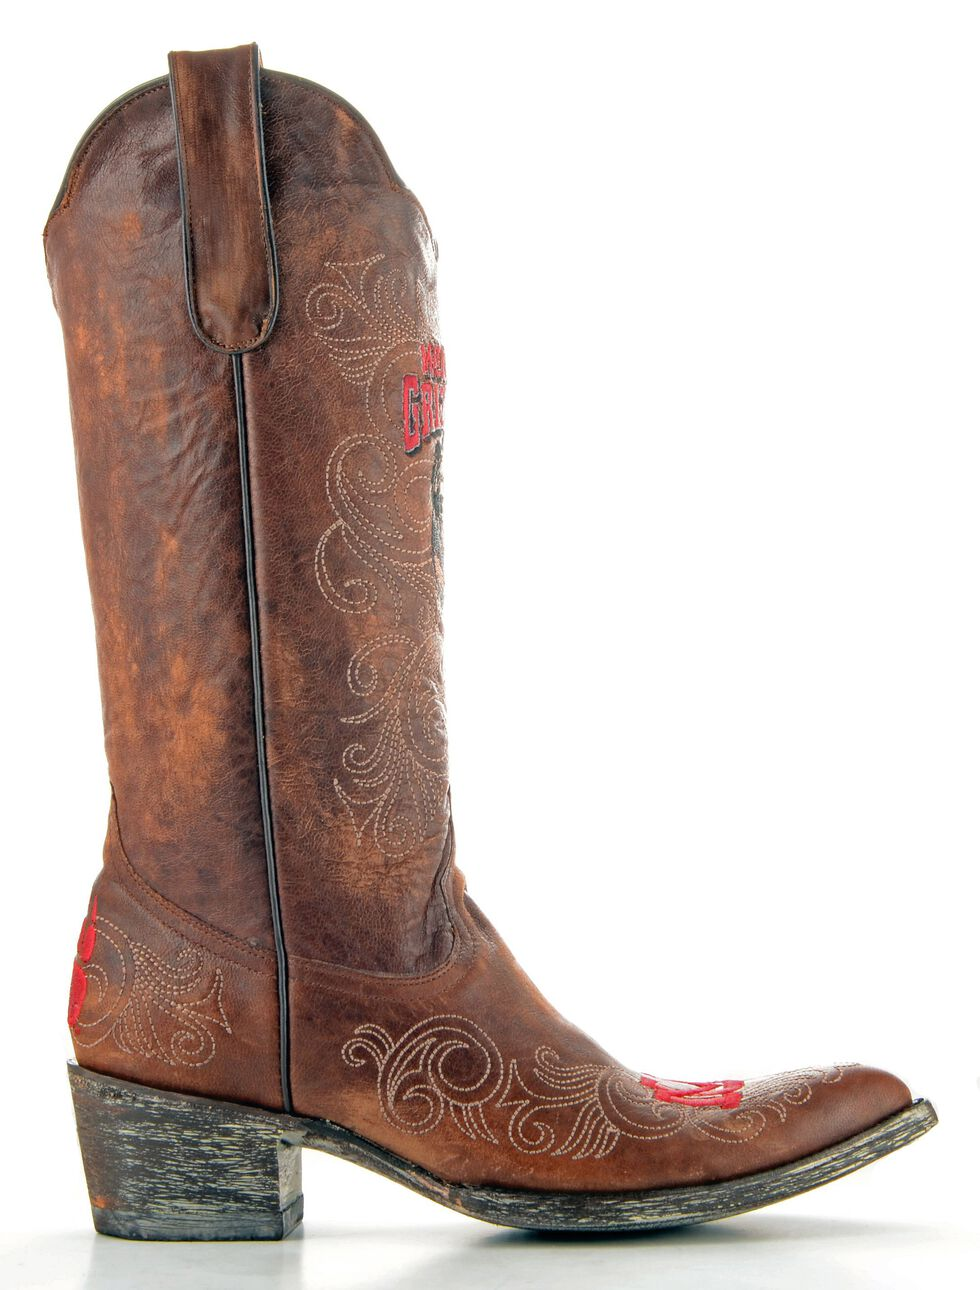 Gameday University of Montana Cowgirl Boots - Pointed Toe, Brass, hi-res